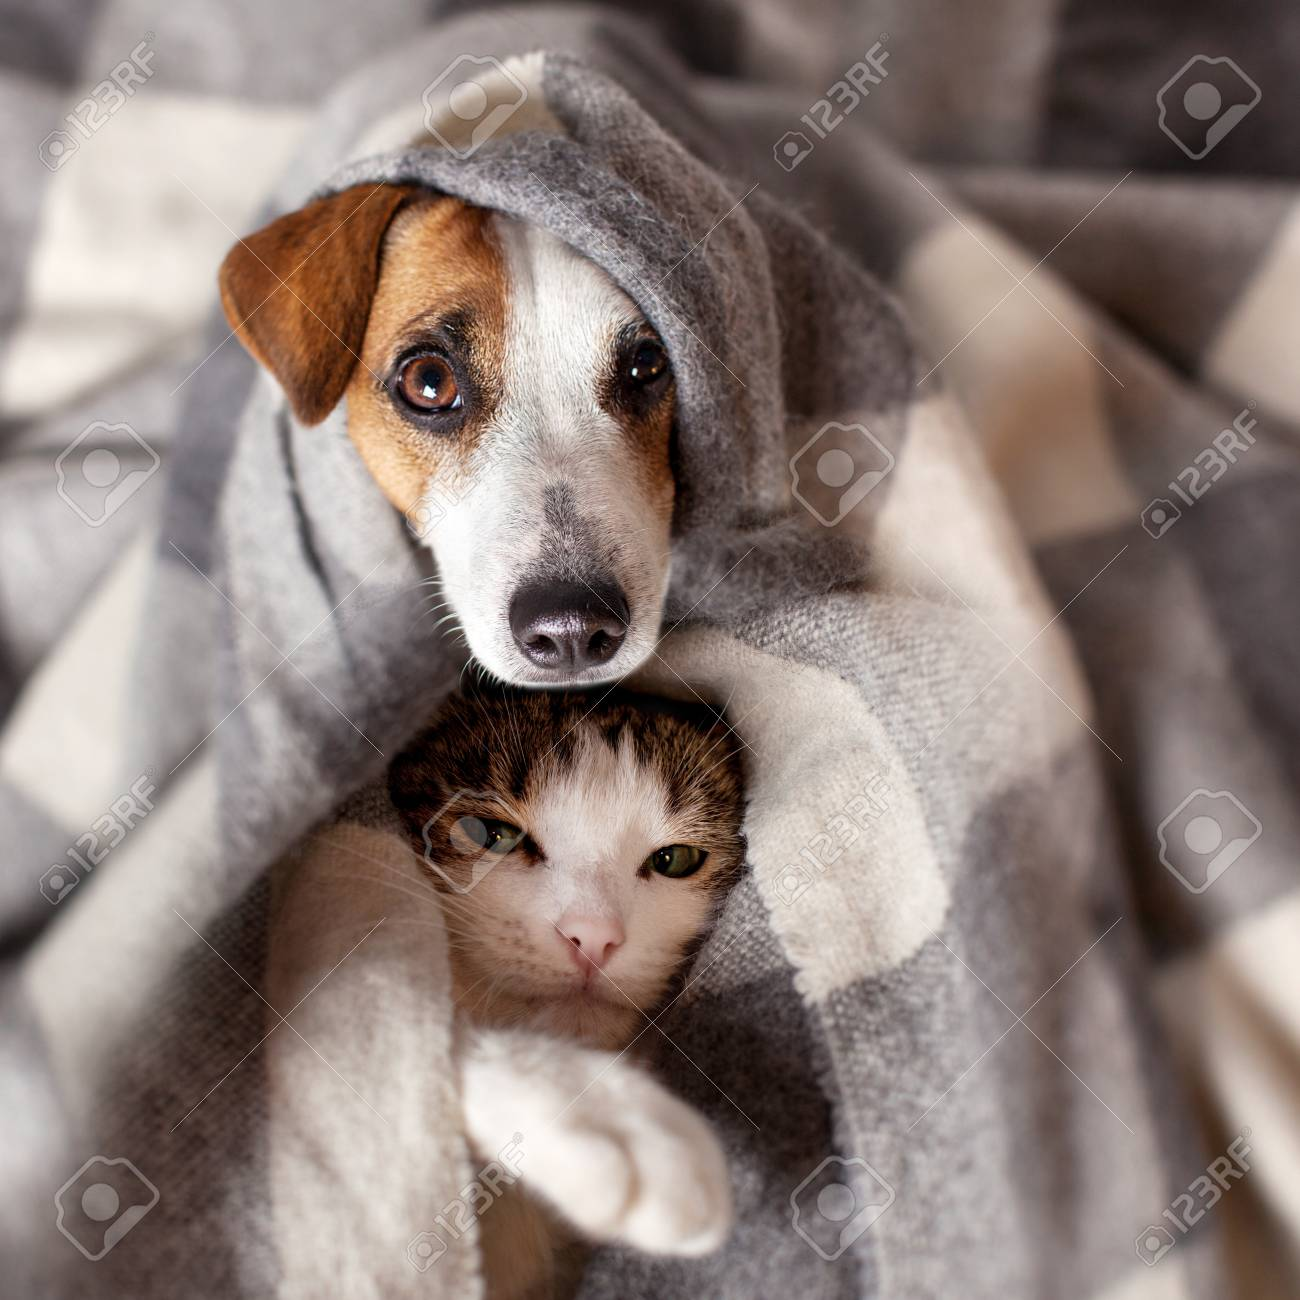 Dog and cat under a plaid. Pet warms under a blanket in cold autumn weather - 87485111